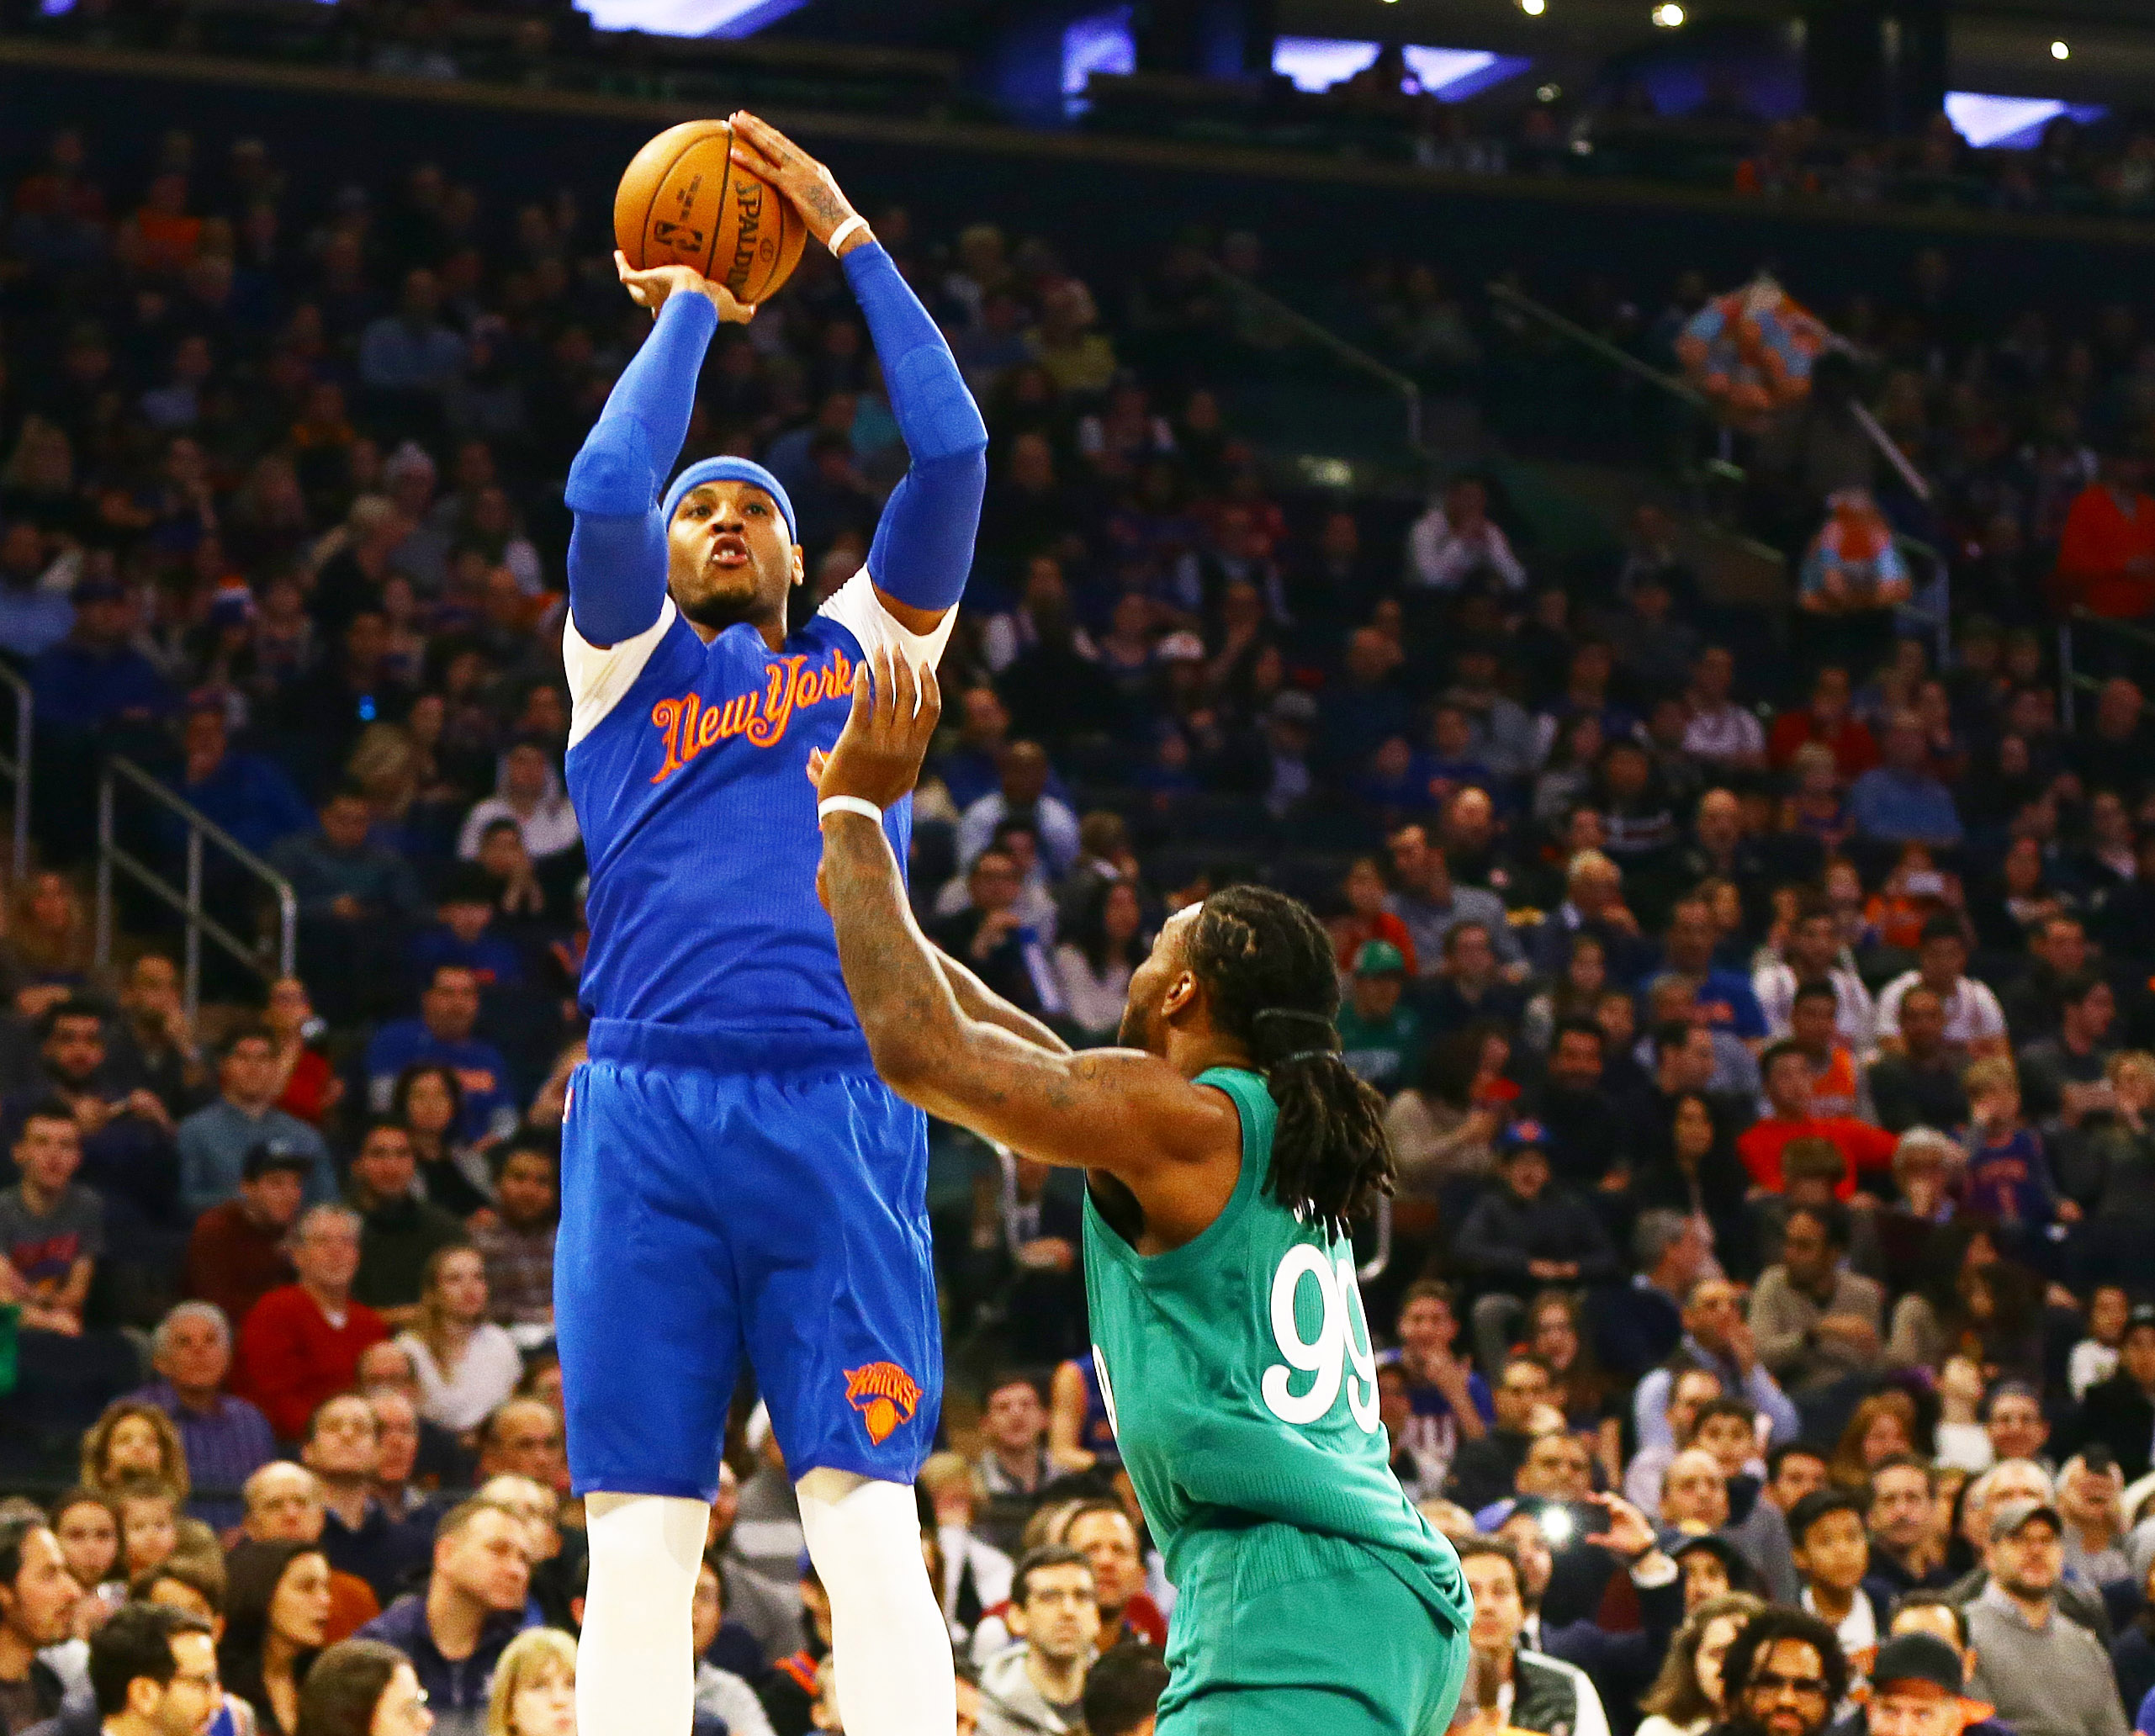 9768478-nba-boston-celtics-at-new-york-knicks